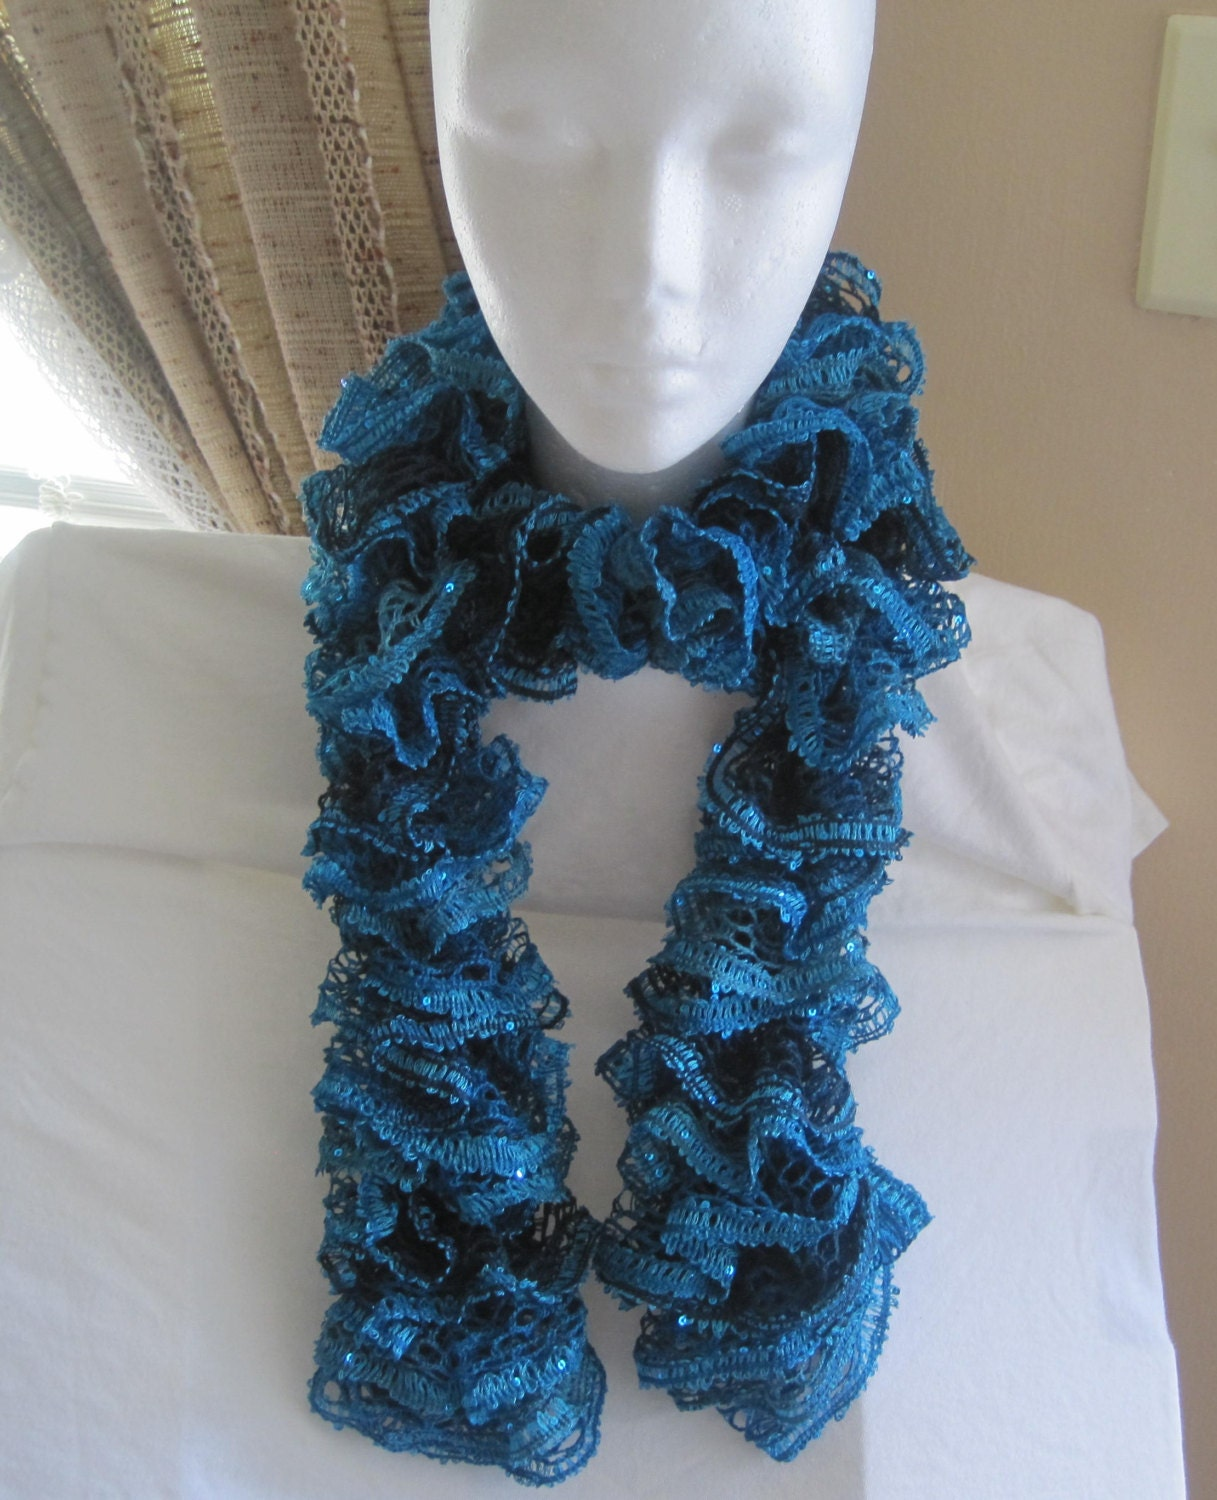 Dachshund Jumper Knitting Pattern : Items similar to Knit Ruffle Sashay Scarf in Teal and Blue with Sequins on Etsy